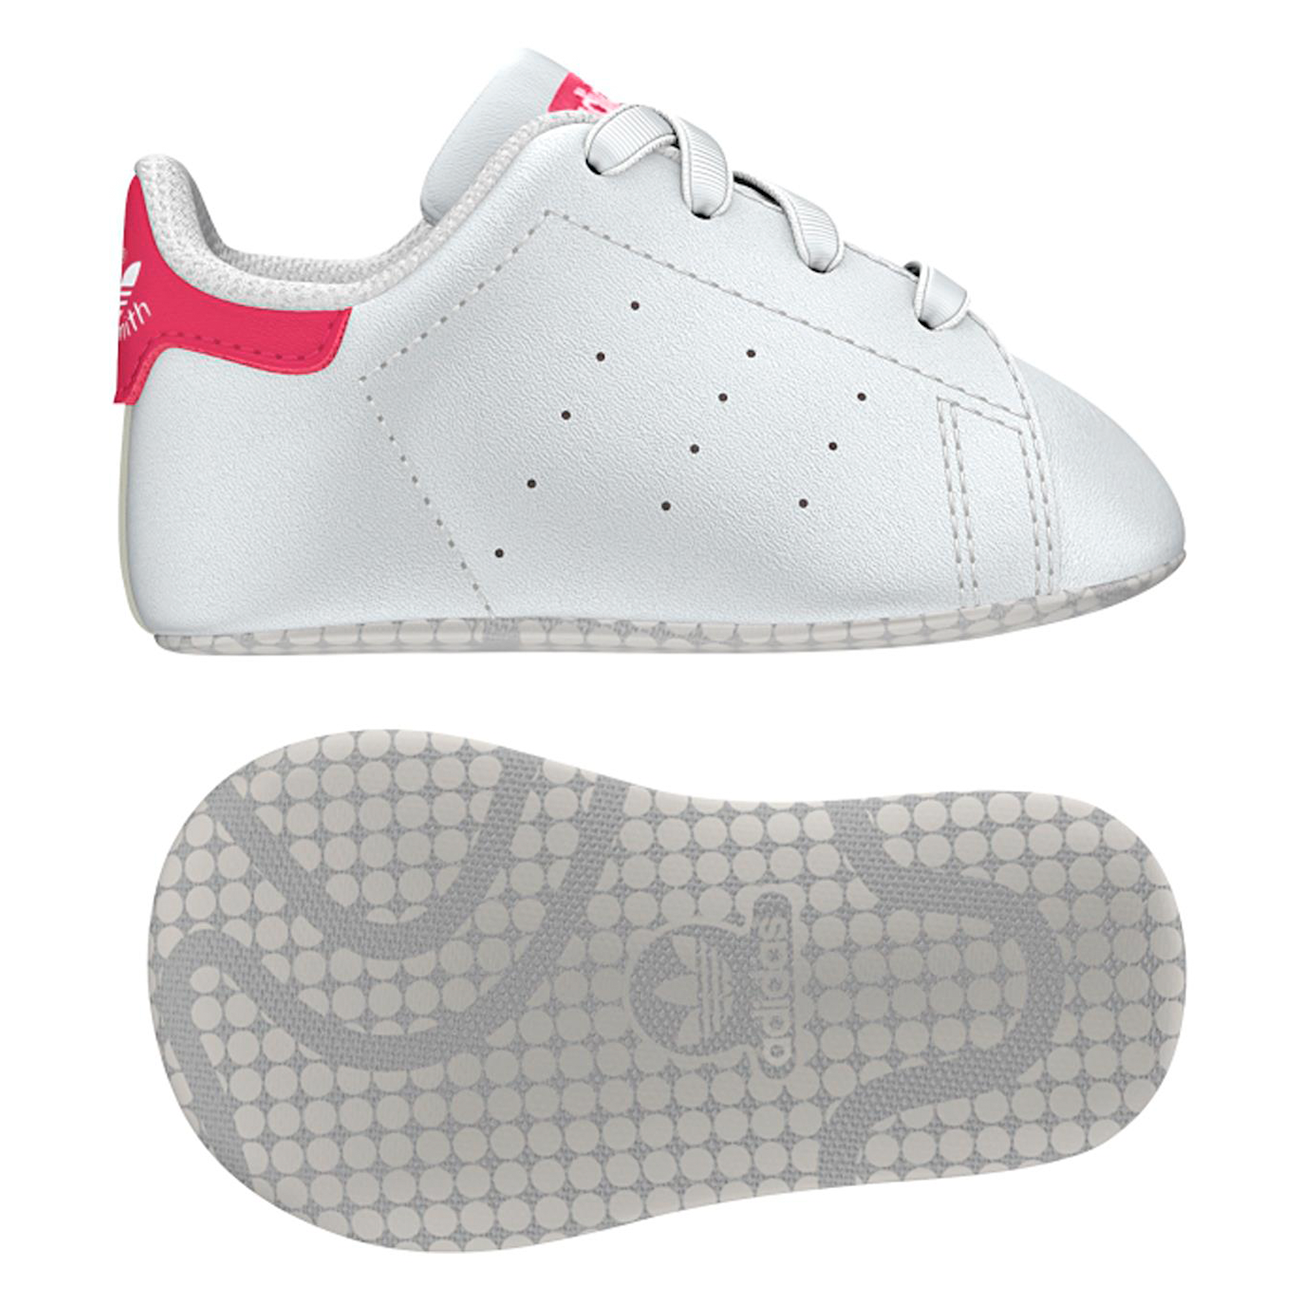 adidas stan smith hvid ray pink rose gold